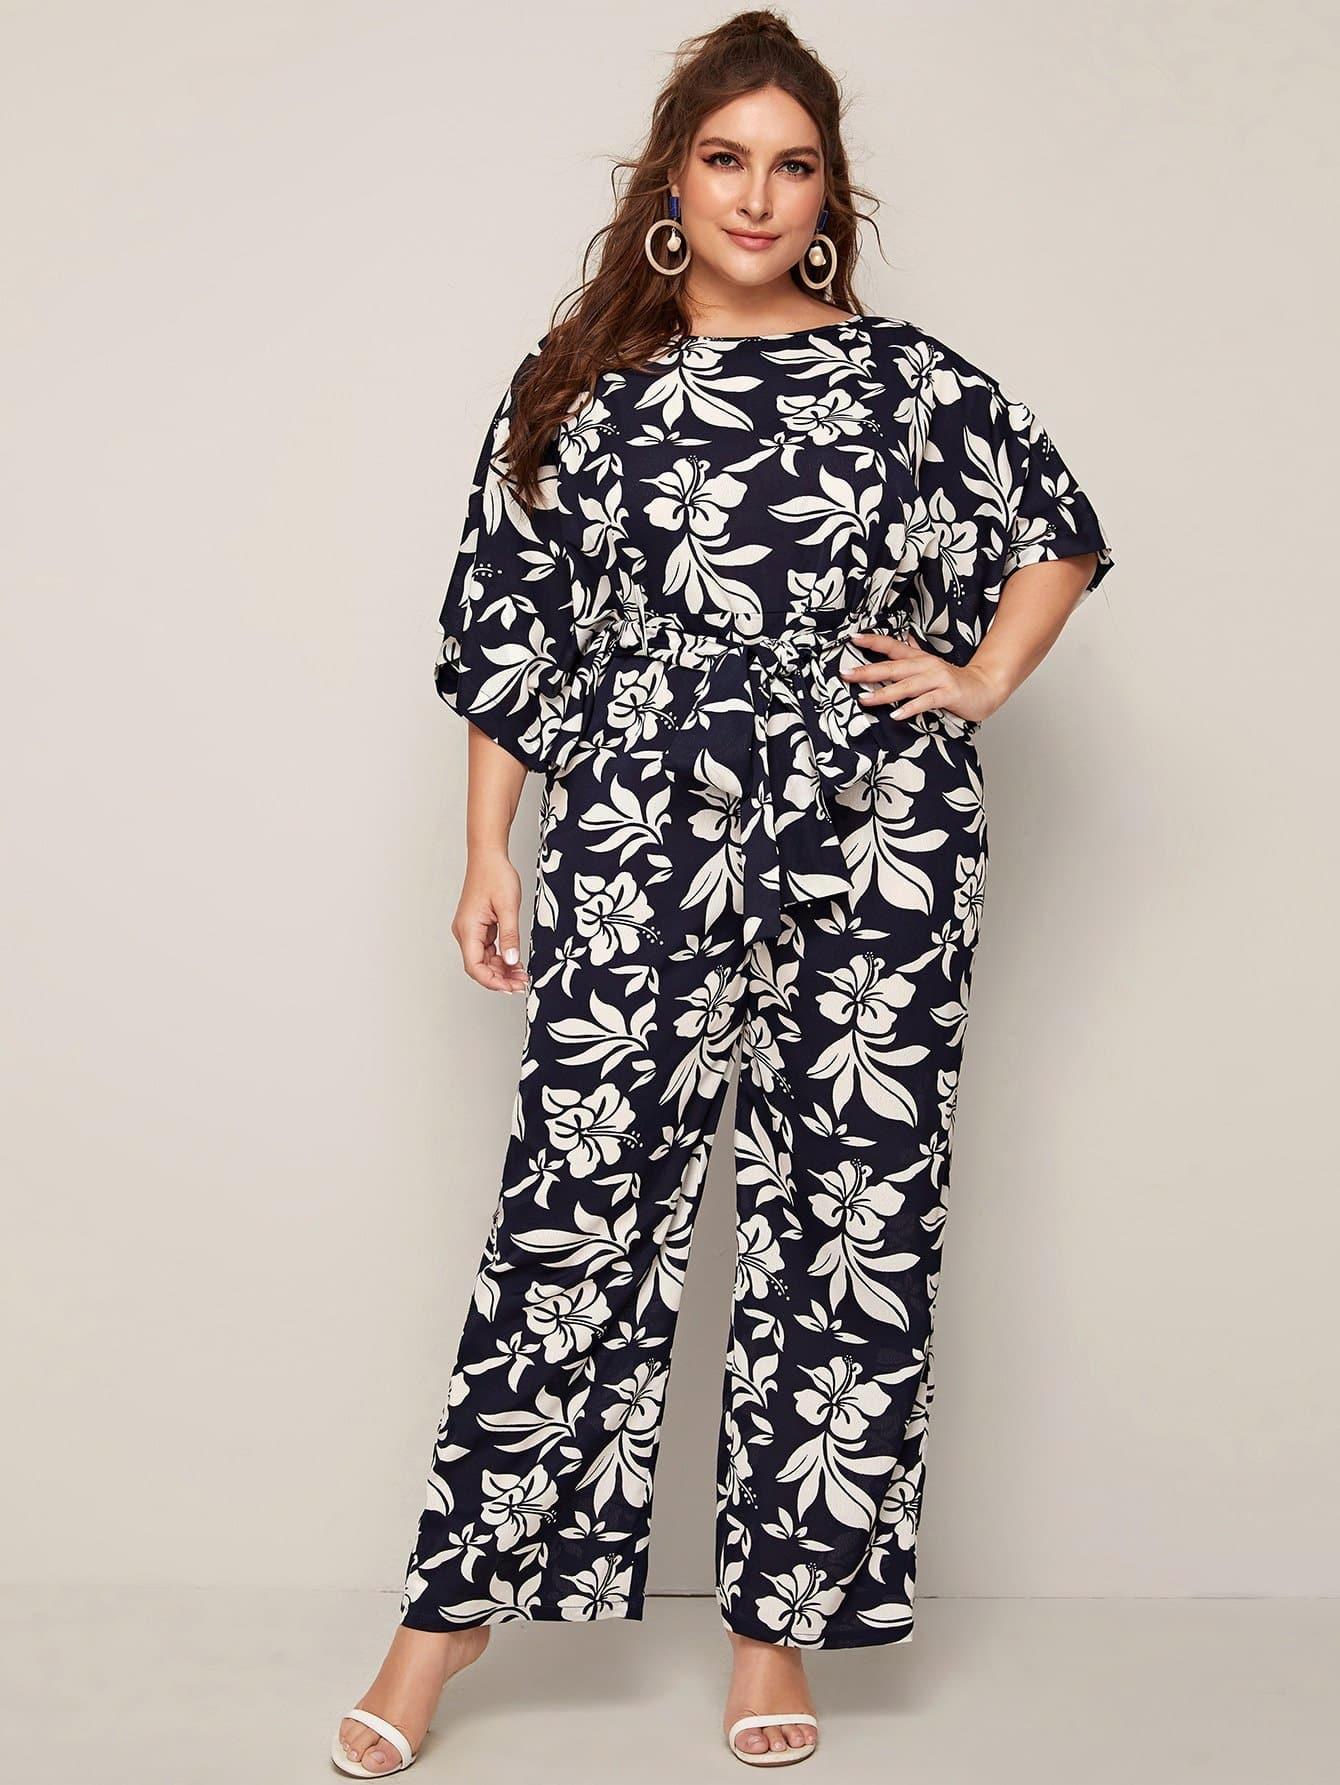 Plus Botanical Print Batwing Sleeve Self Belted Jumpsuit - FLJ CORPORATIONS